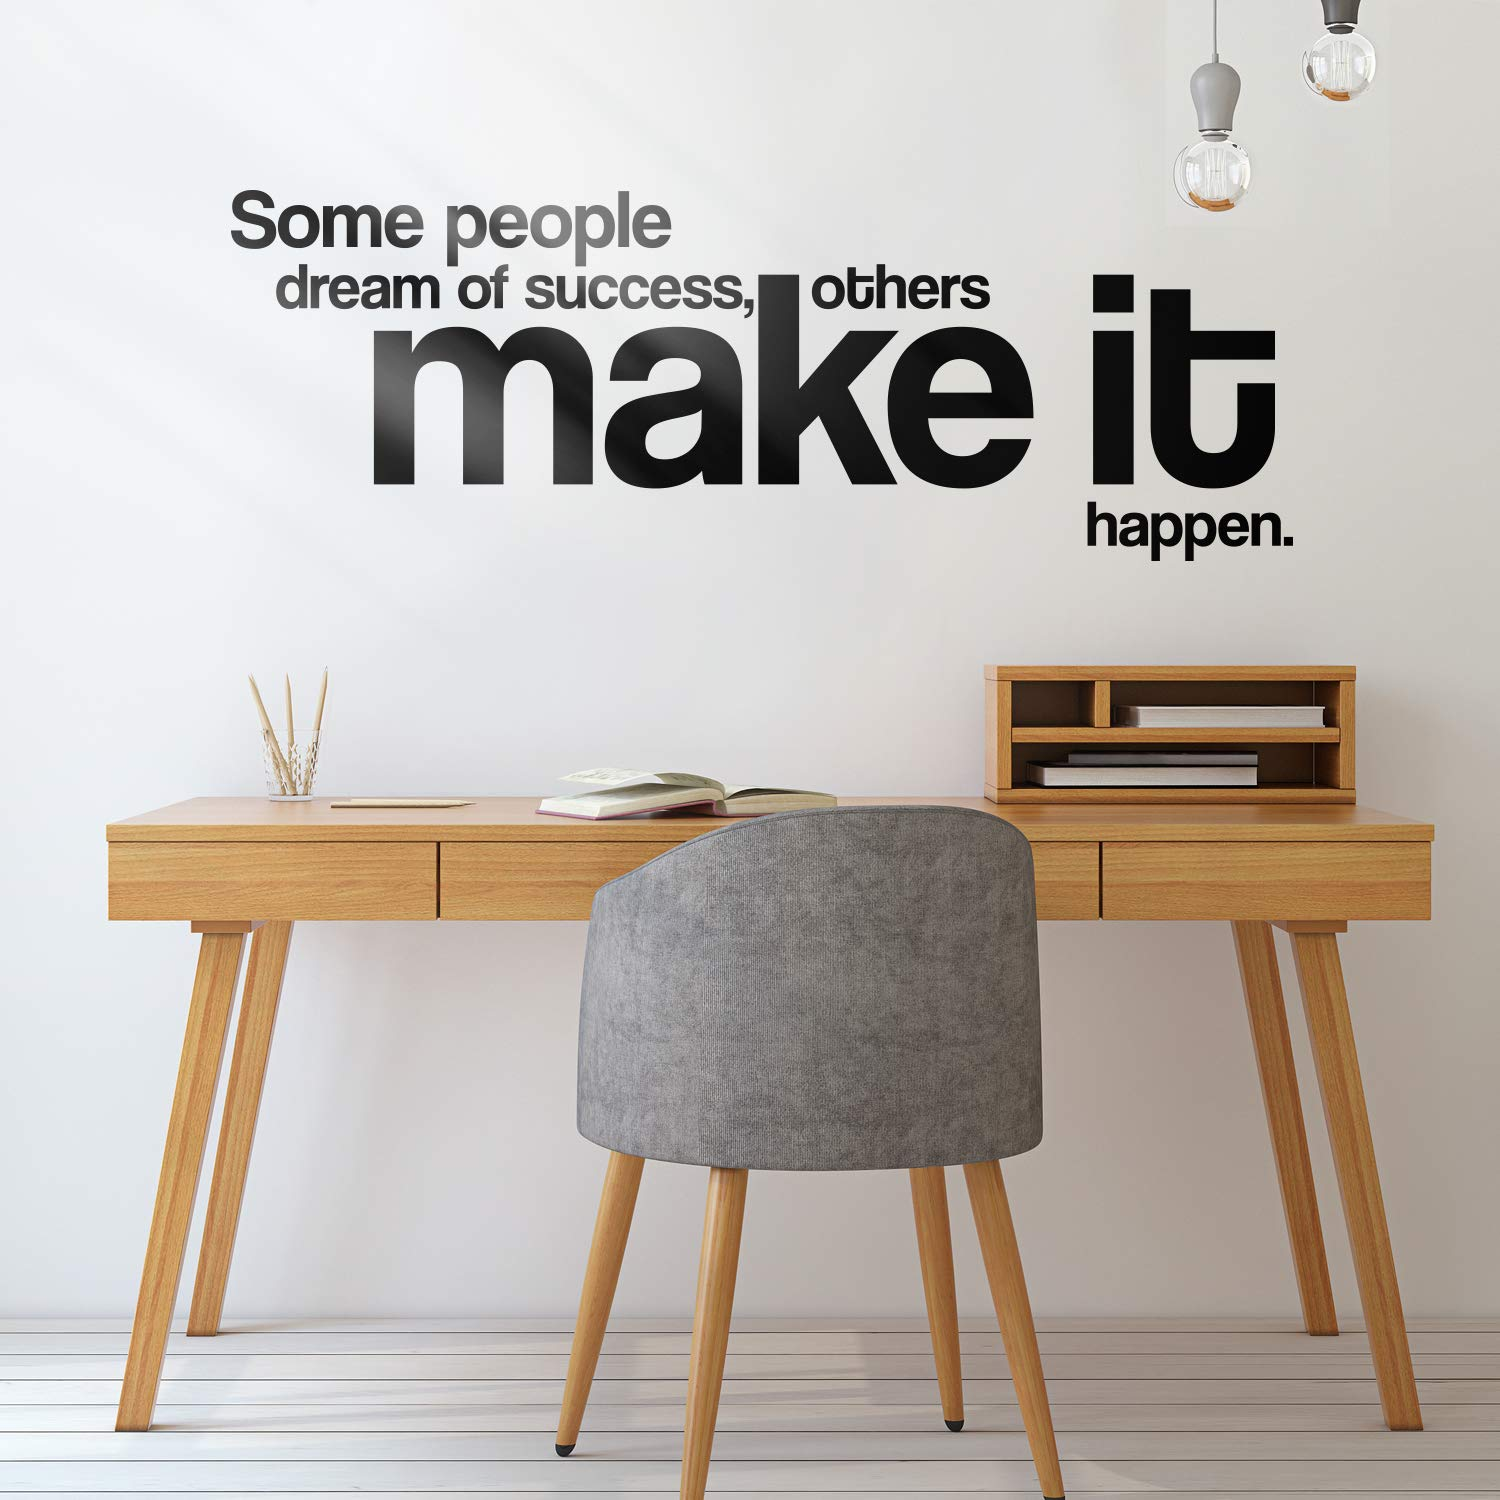 Positive Quotes Dream Of Success Make It Happen Phrase Wall Sticker For Living Rooms Decoration School Office Bedroom Wall Stick